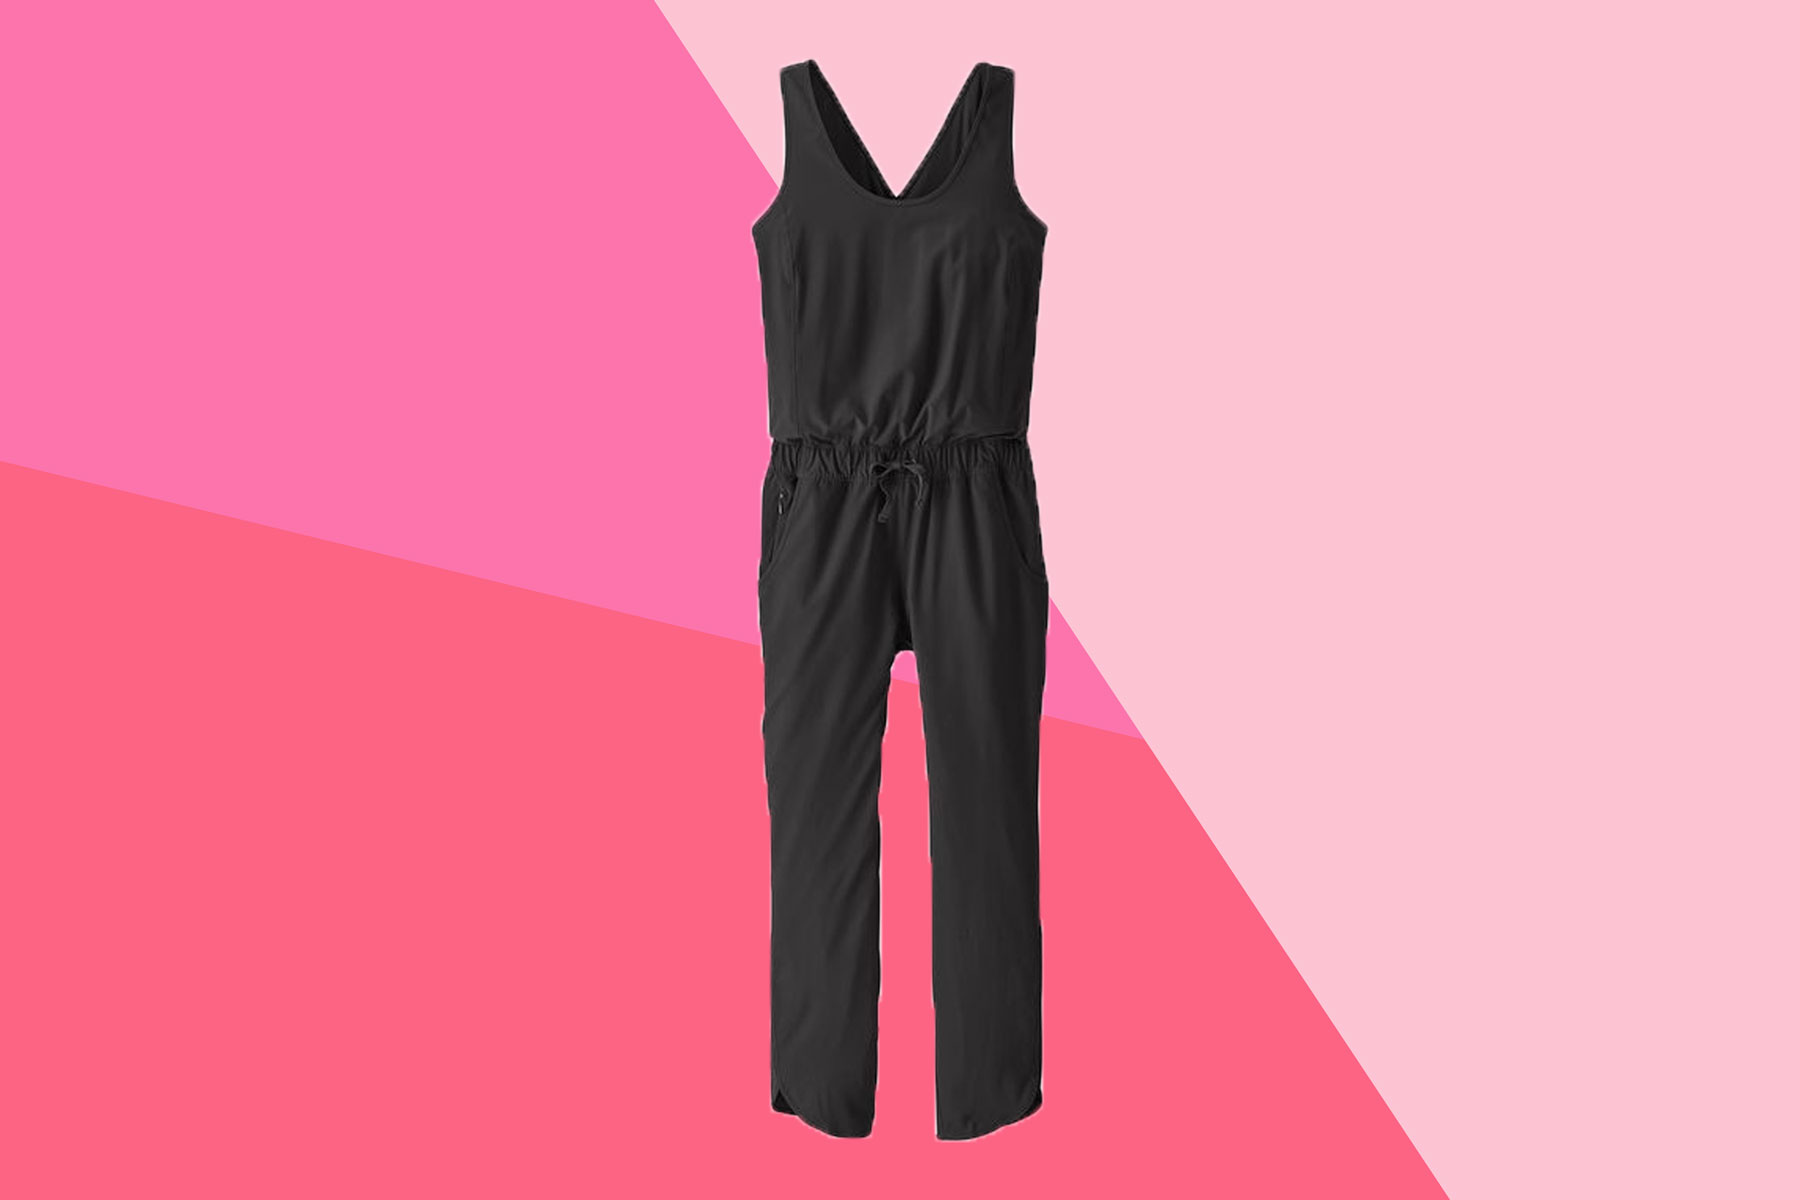 Best travel clothes for women - Patagonia Women's Fleetwith Romper